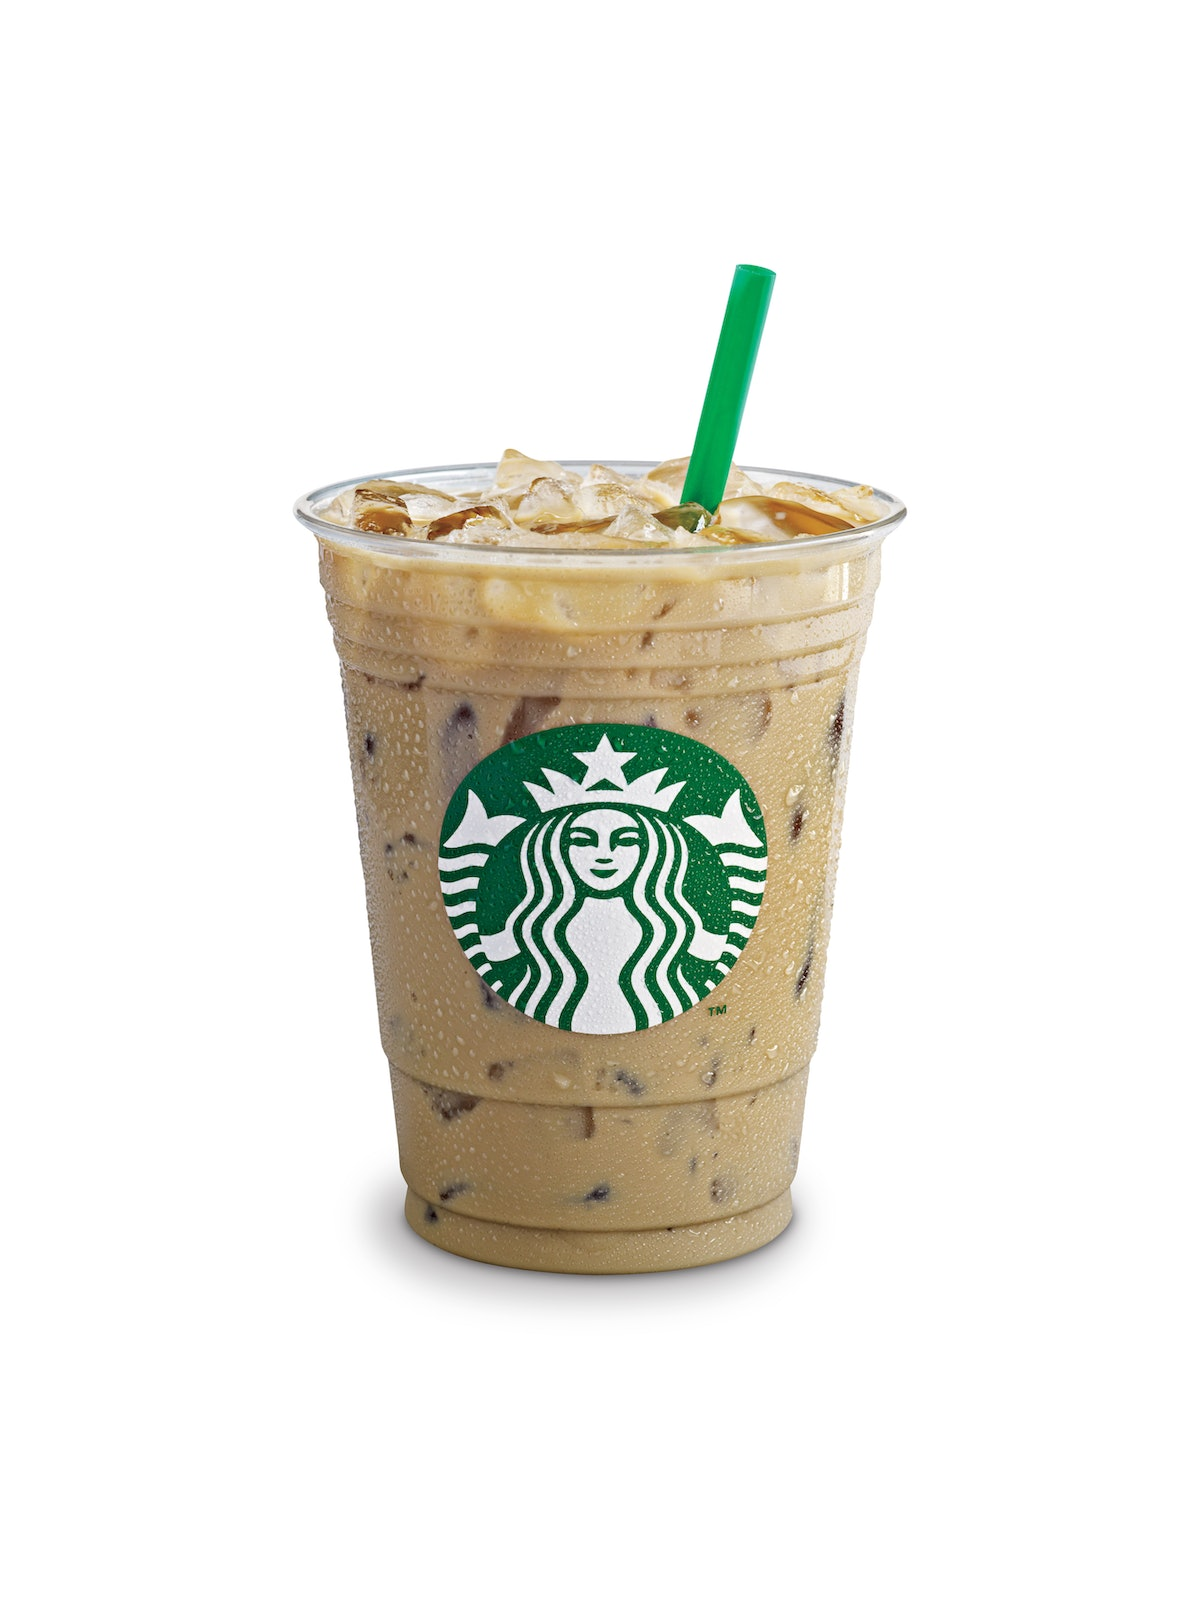 This Vanilla Blonde Latte is one of the strongest Starbucks vanilla drinks that will give you a boost.